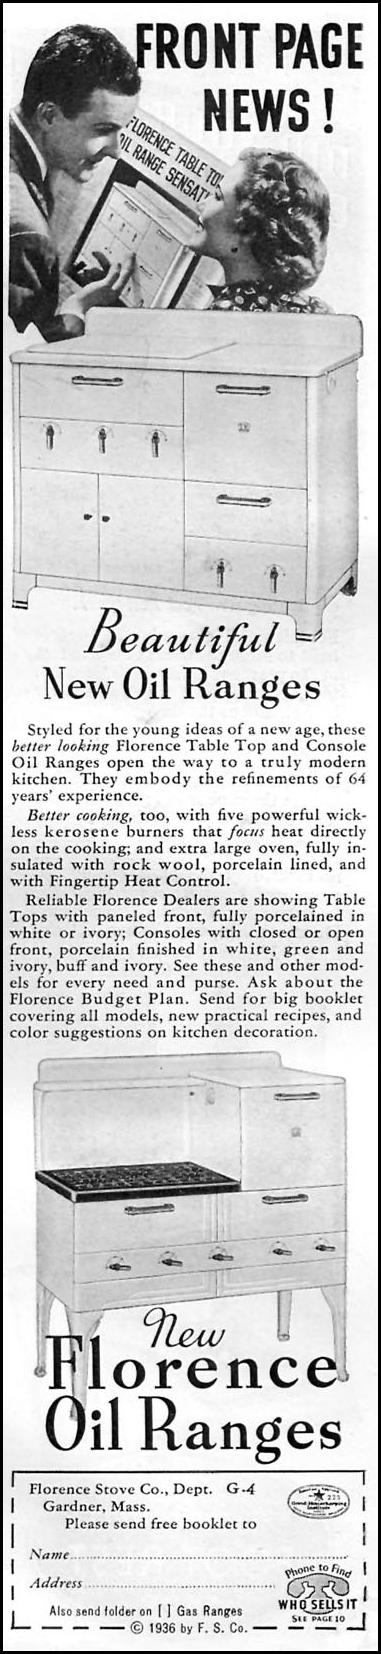 FLORENCE OIL RANGES GOOD HOUSEKEEPING 04/01/1936 p. 247